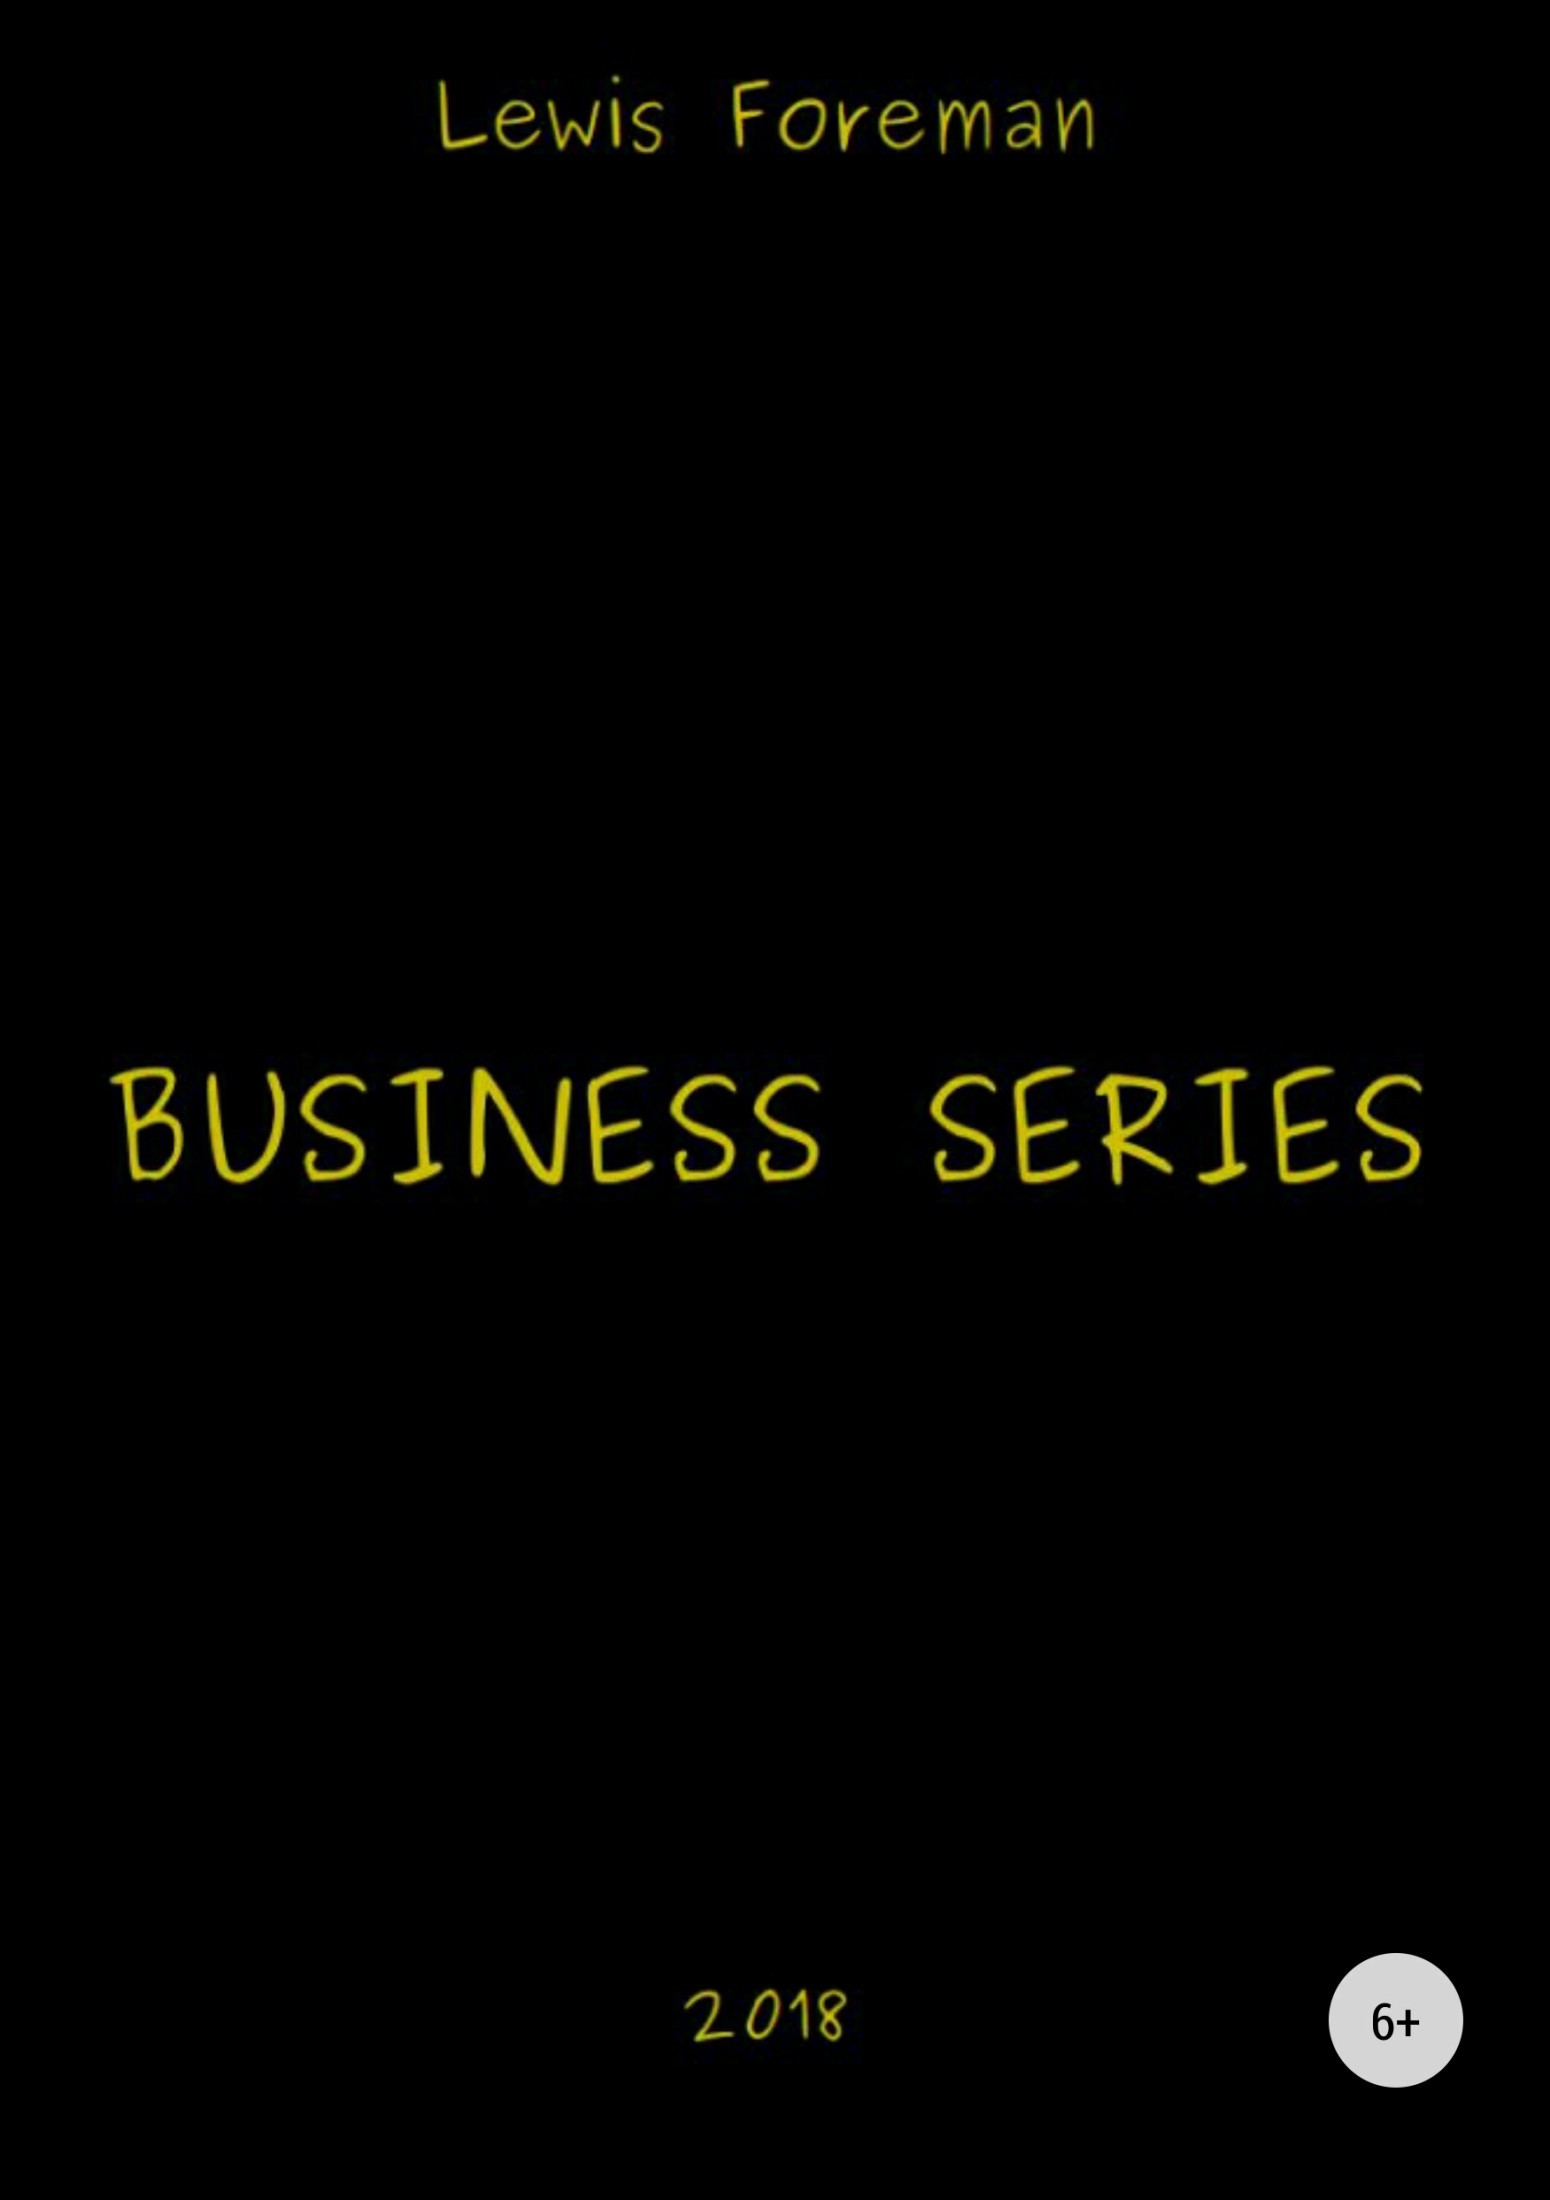 Business Series. Full